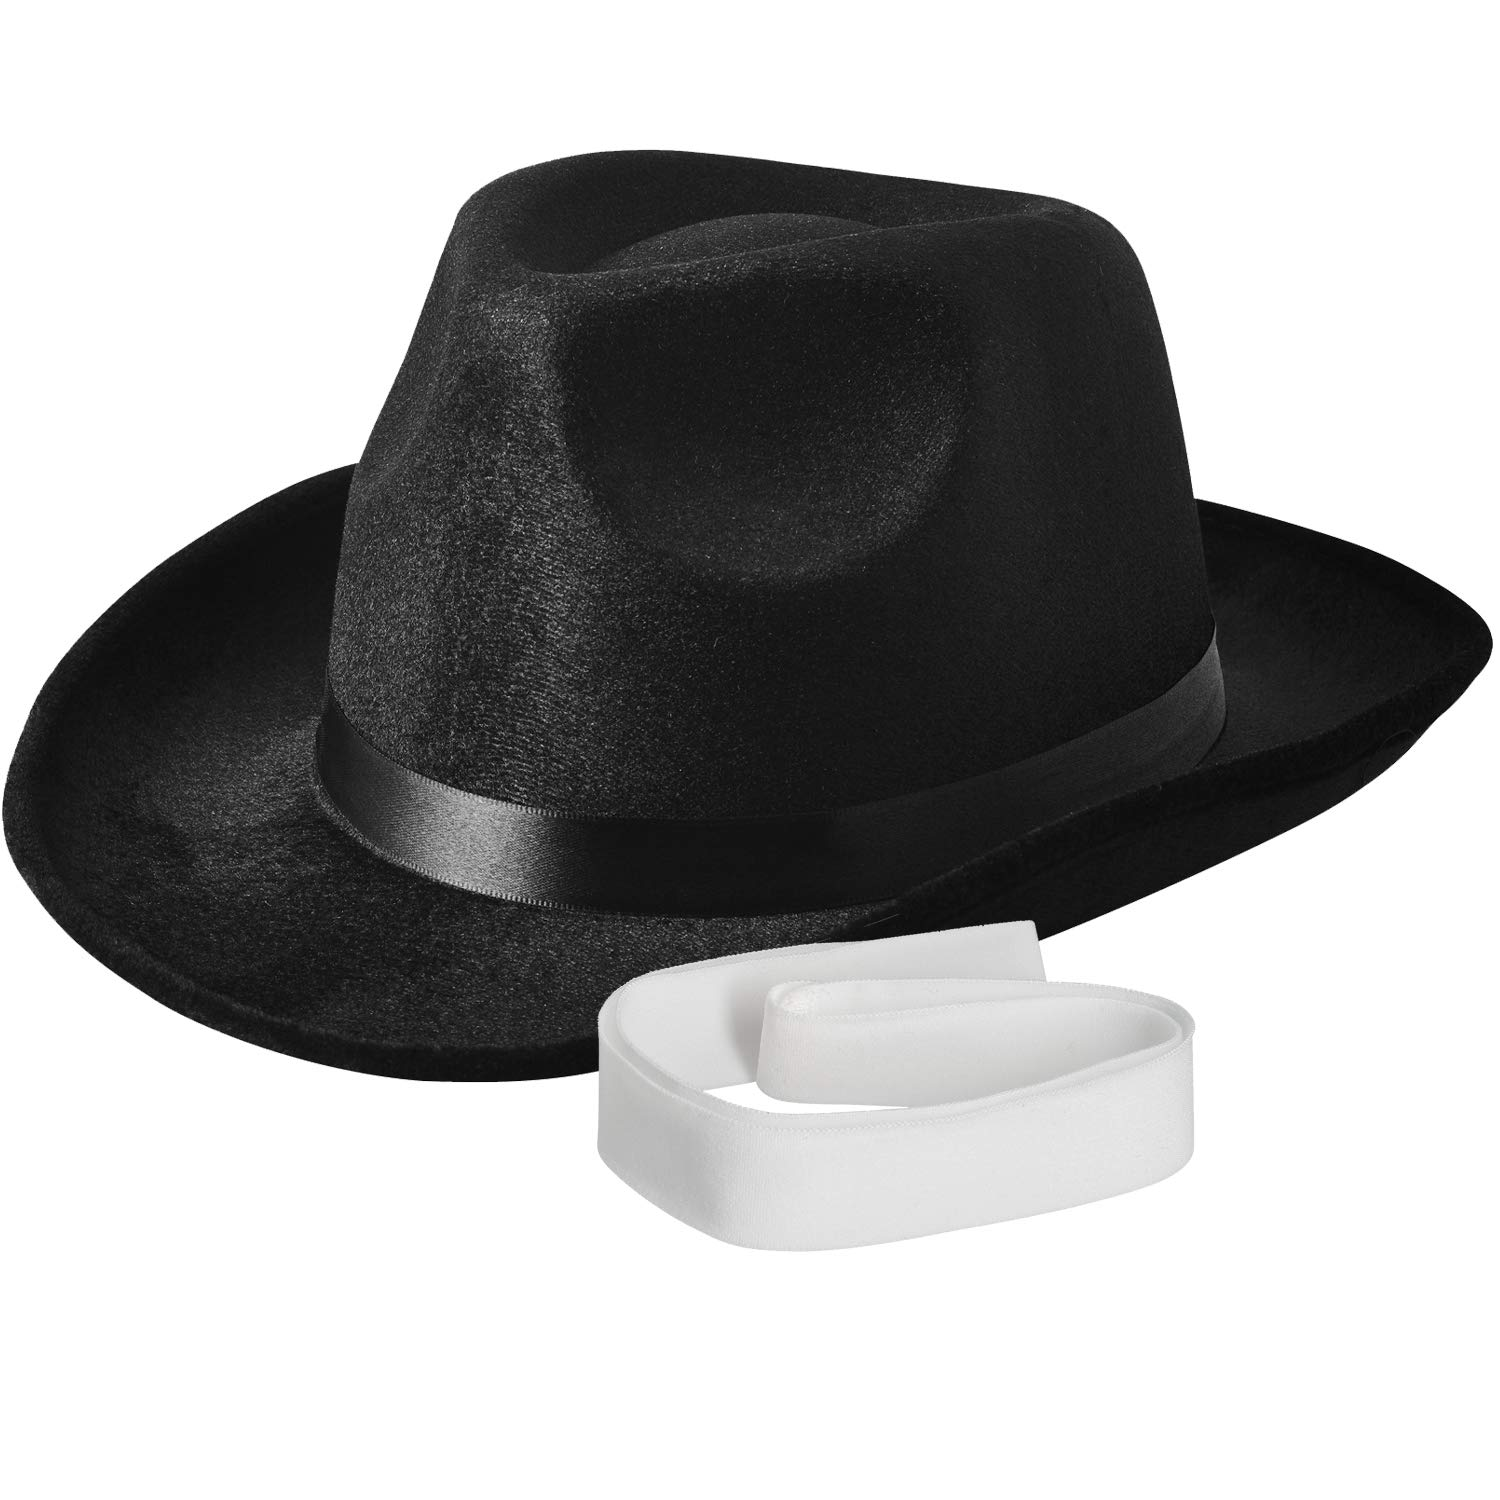 NJ Novelty - Fedora Gangster Hat, Black Pinched Hat Costume Accessory + White Band 01381